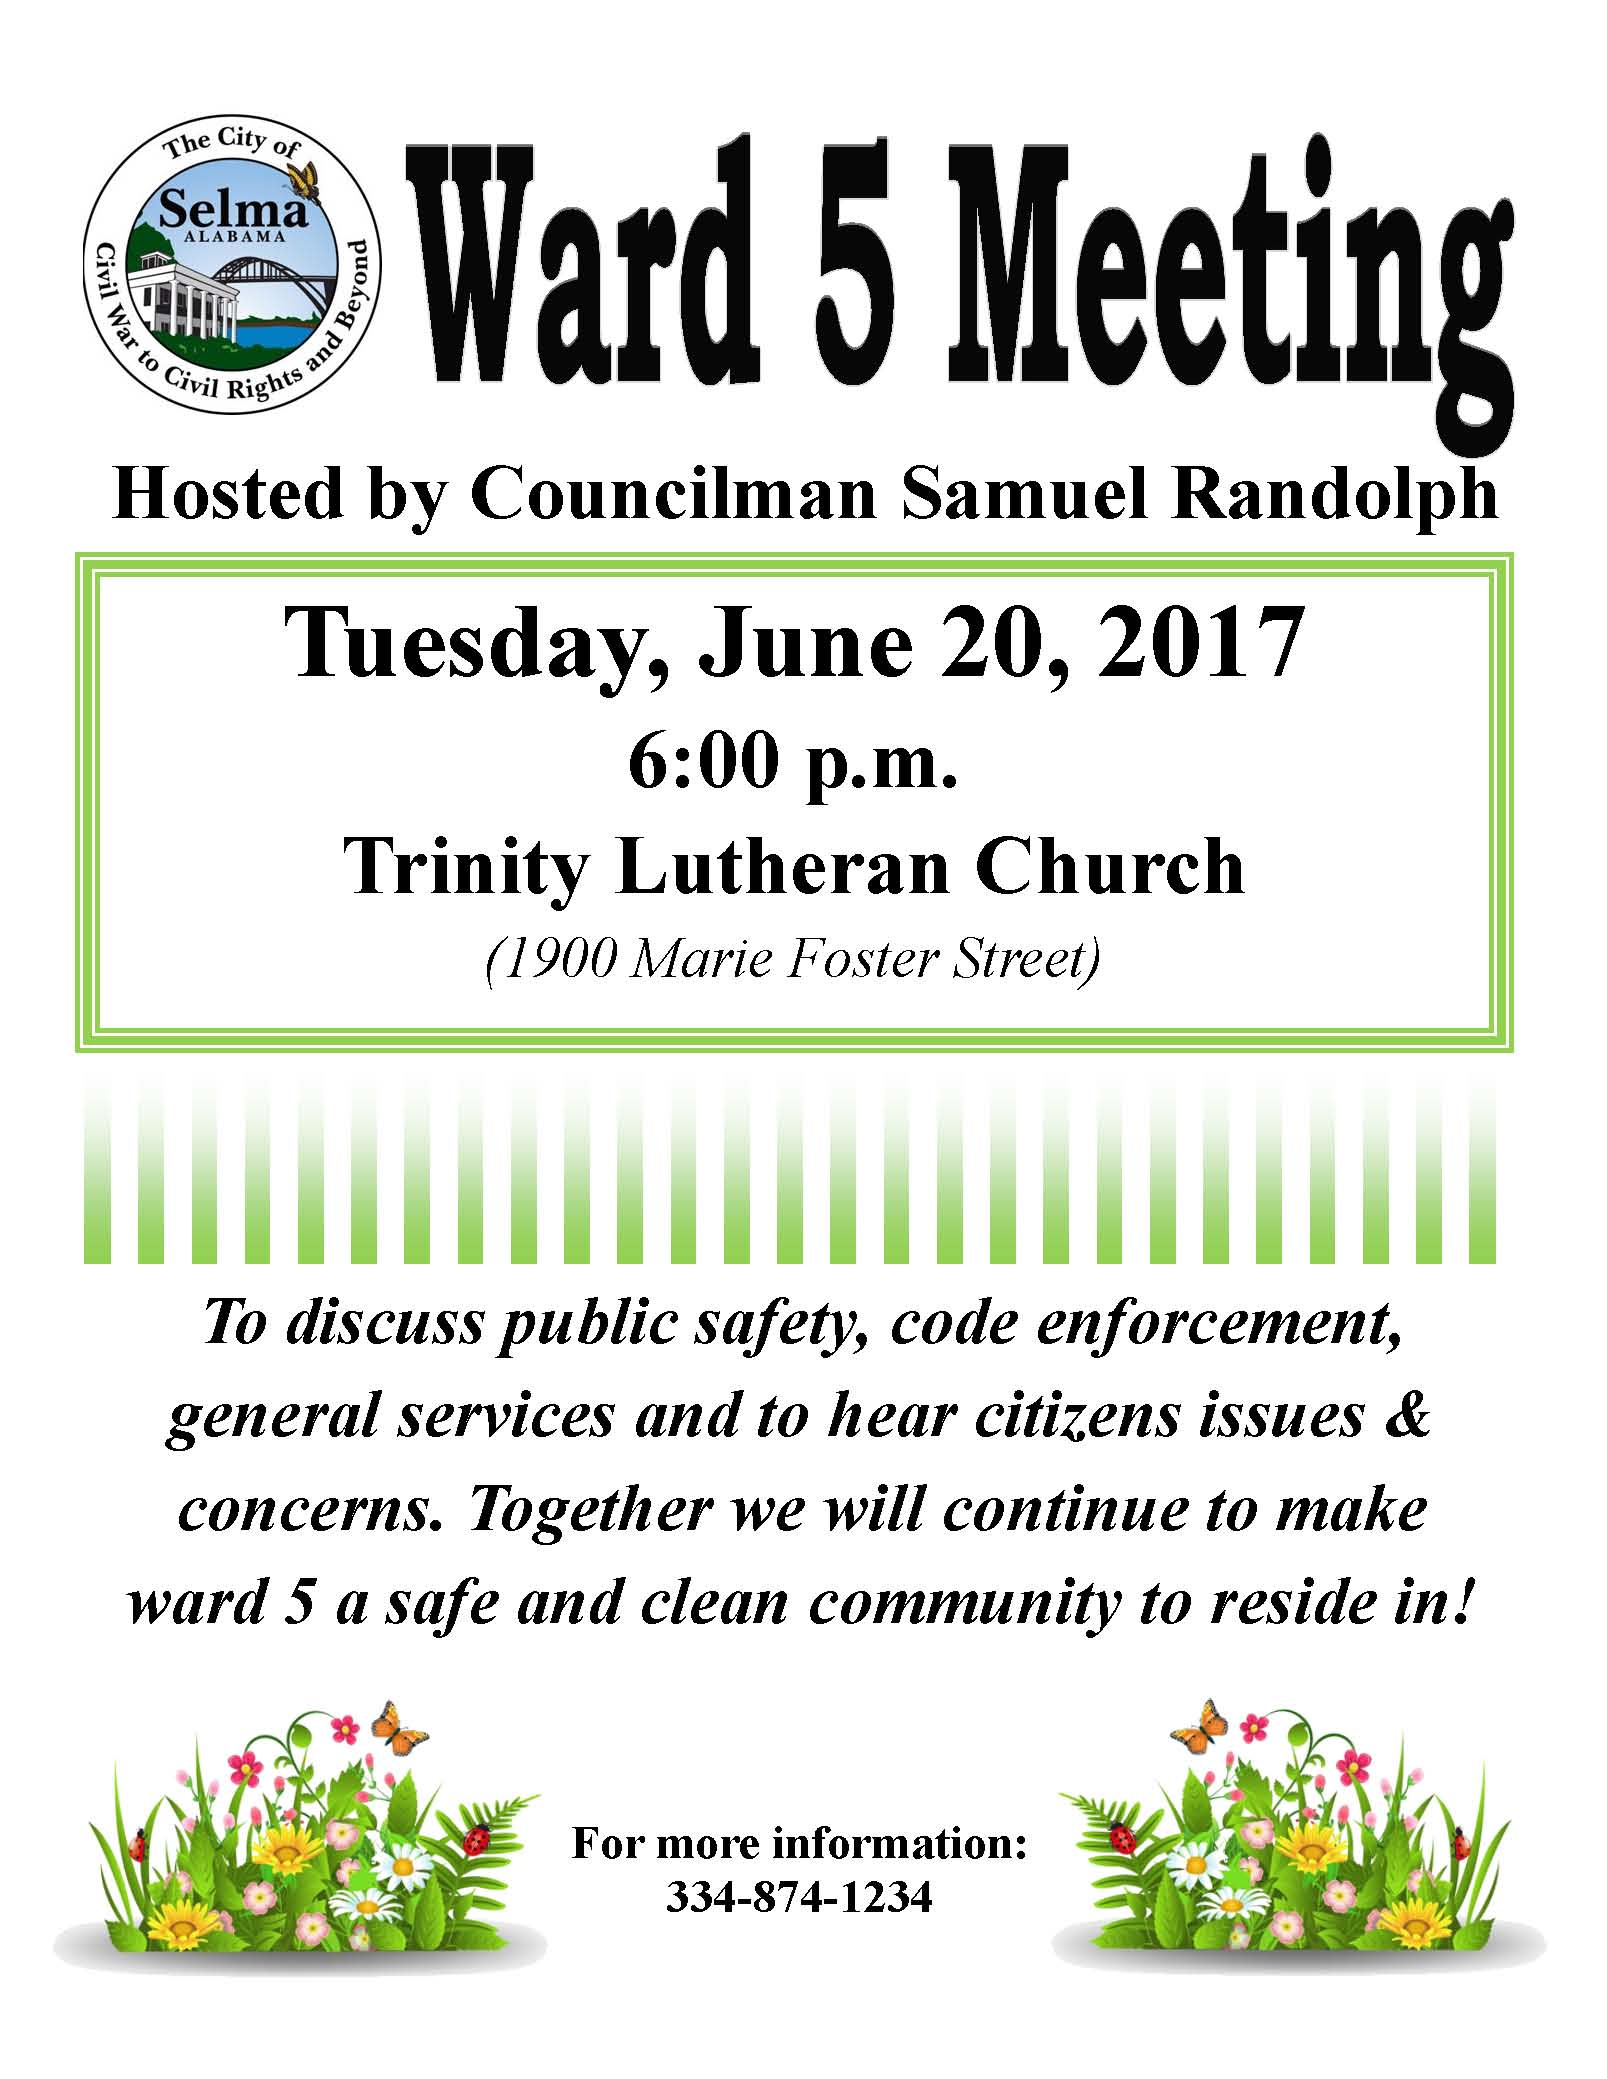 Randolph Ward 5 Meeting Flyer 6.20.17